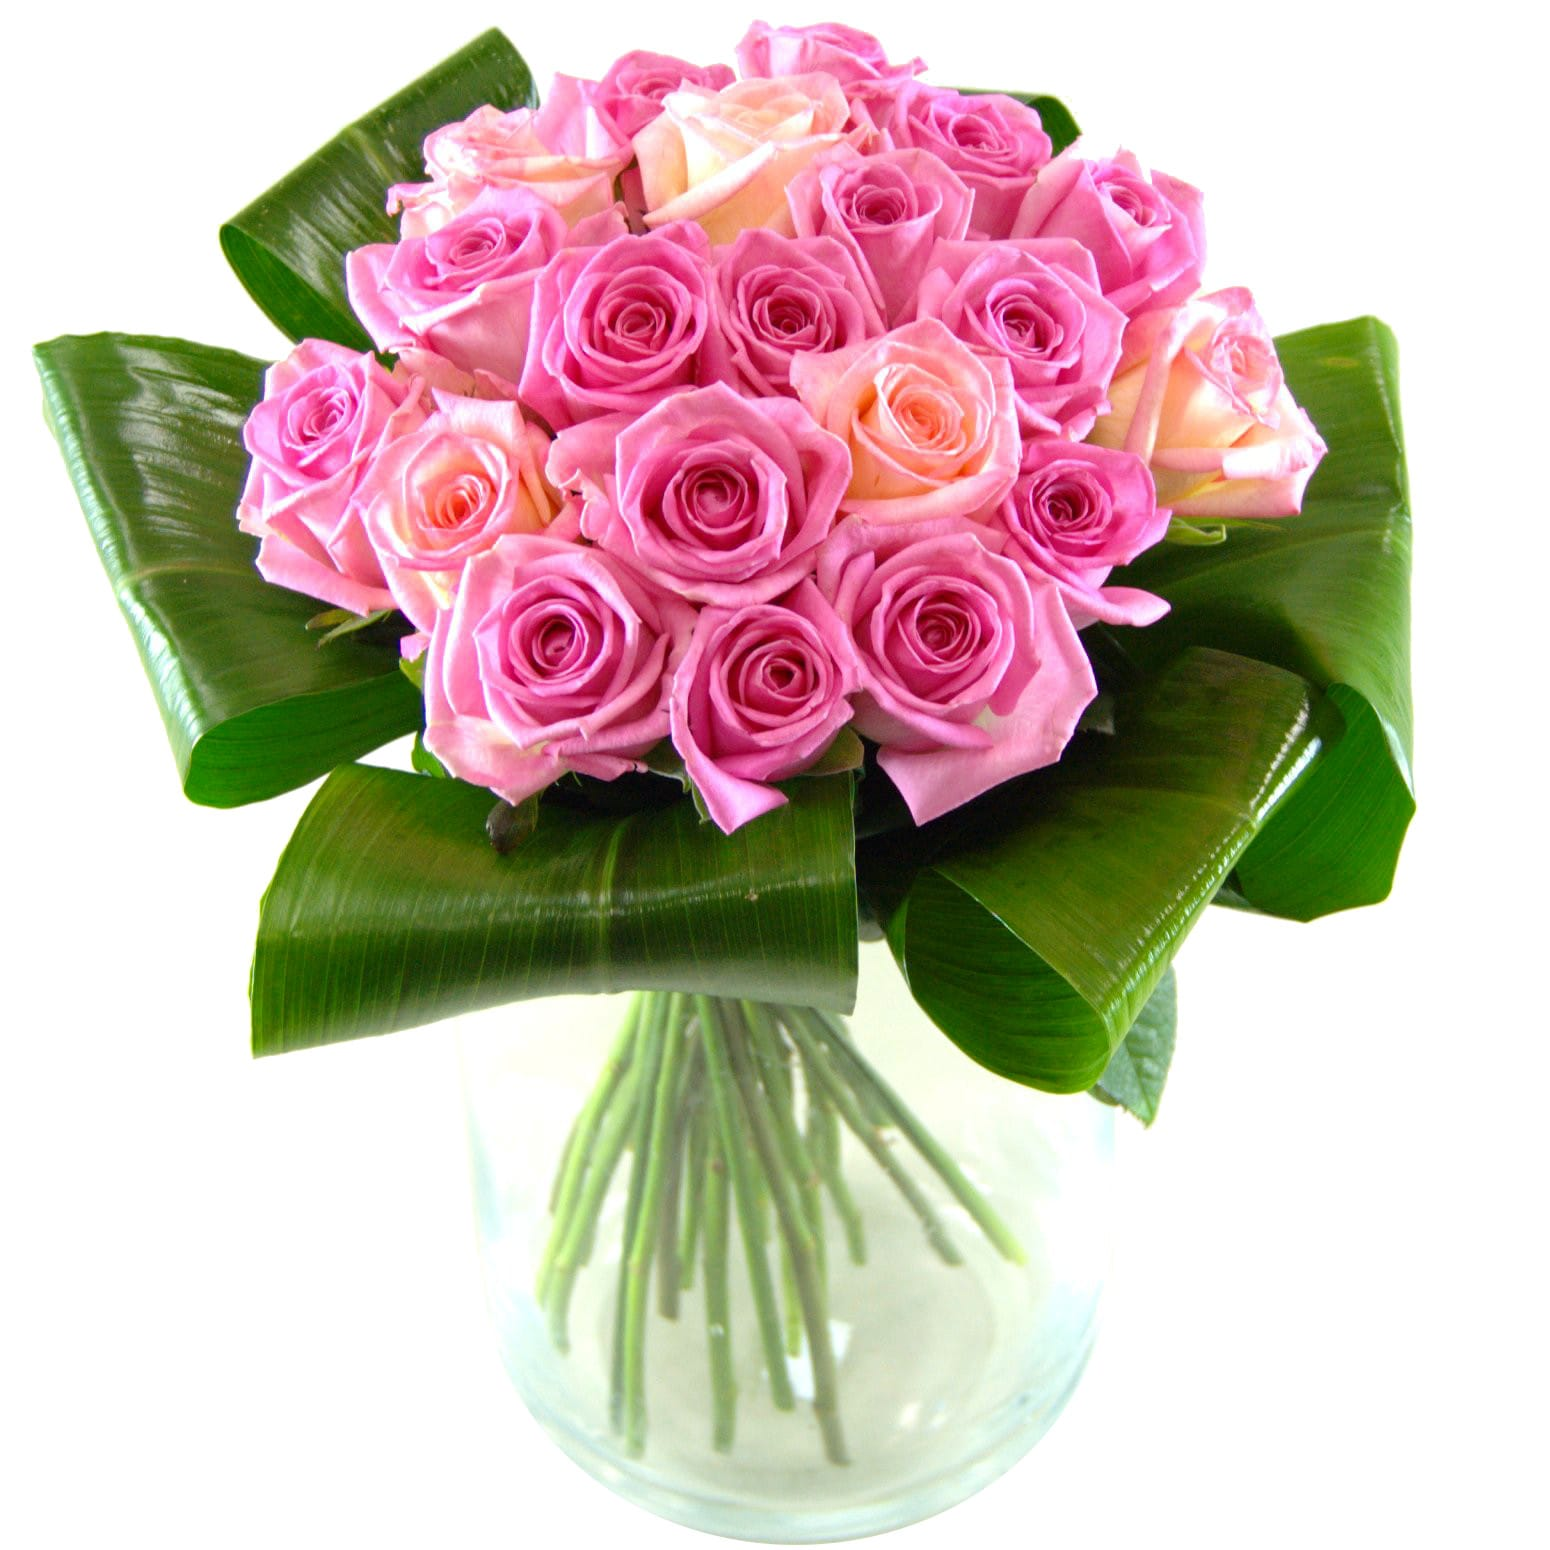 Romantic flowers order romantic flowers gifts online delivered 3499inc std delivery izmirmasajfo